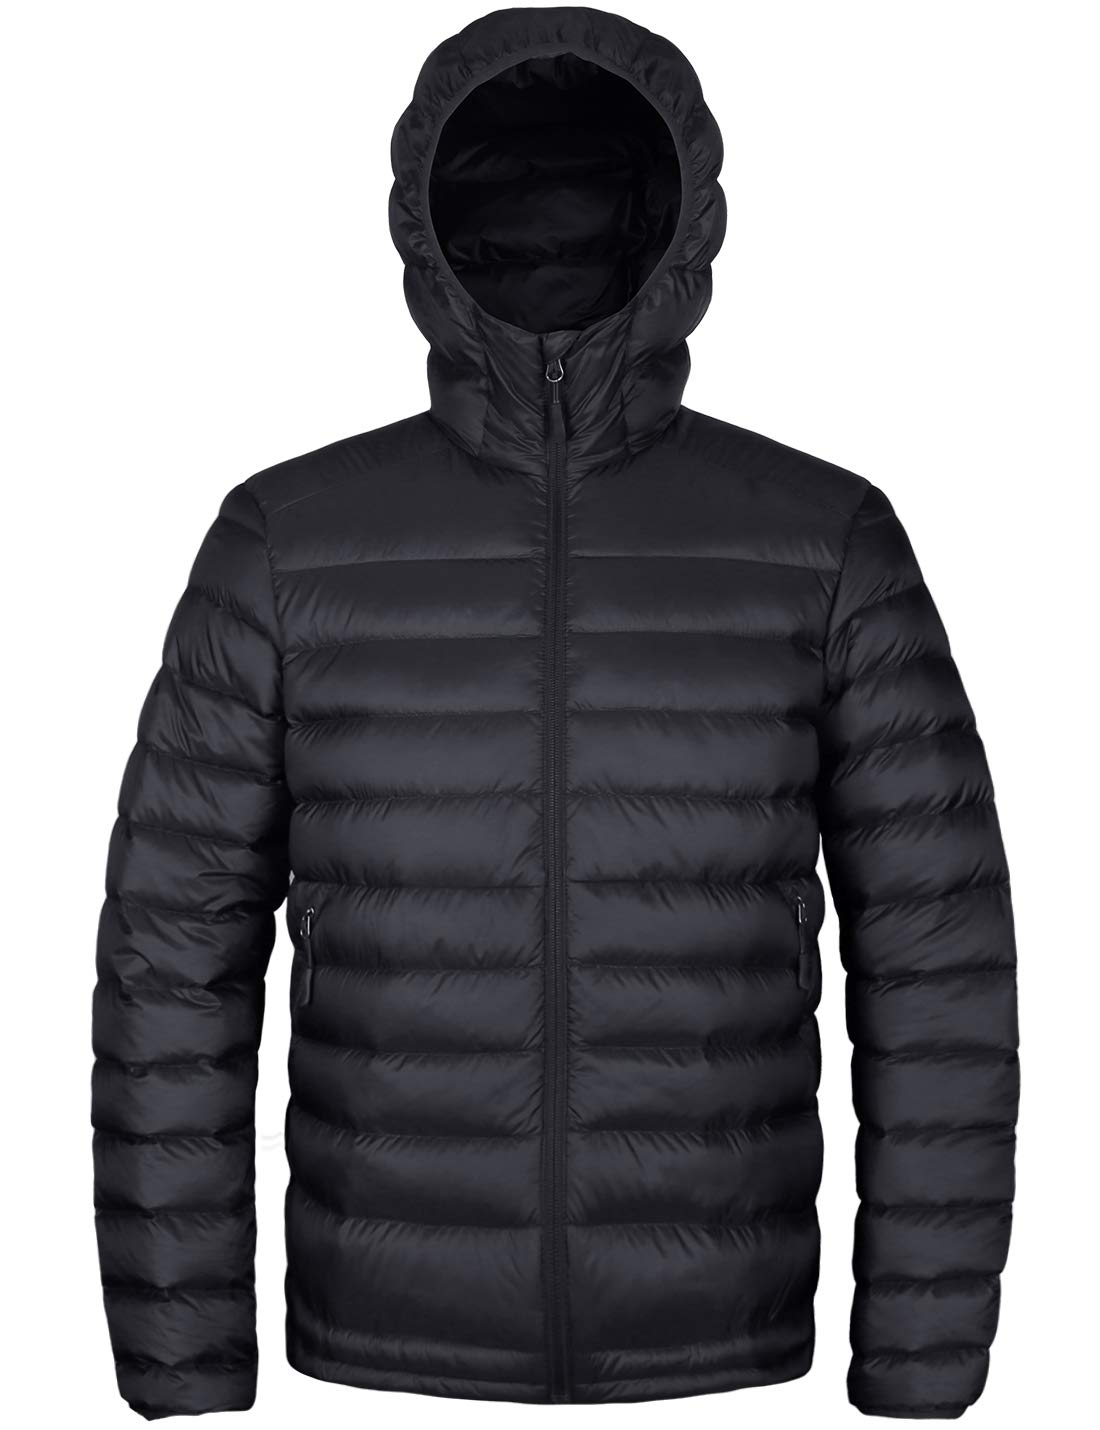 573dc0734 HARD LAND Men's Hooded Packable Down Jacket Lightweight Insulated Winter  Puffer Coat Outdoor Black Size L